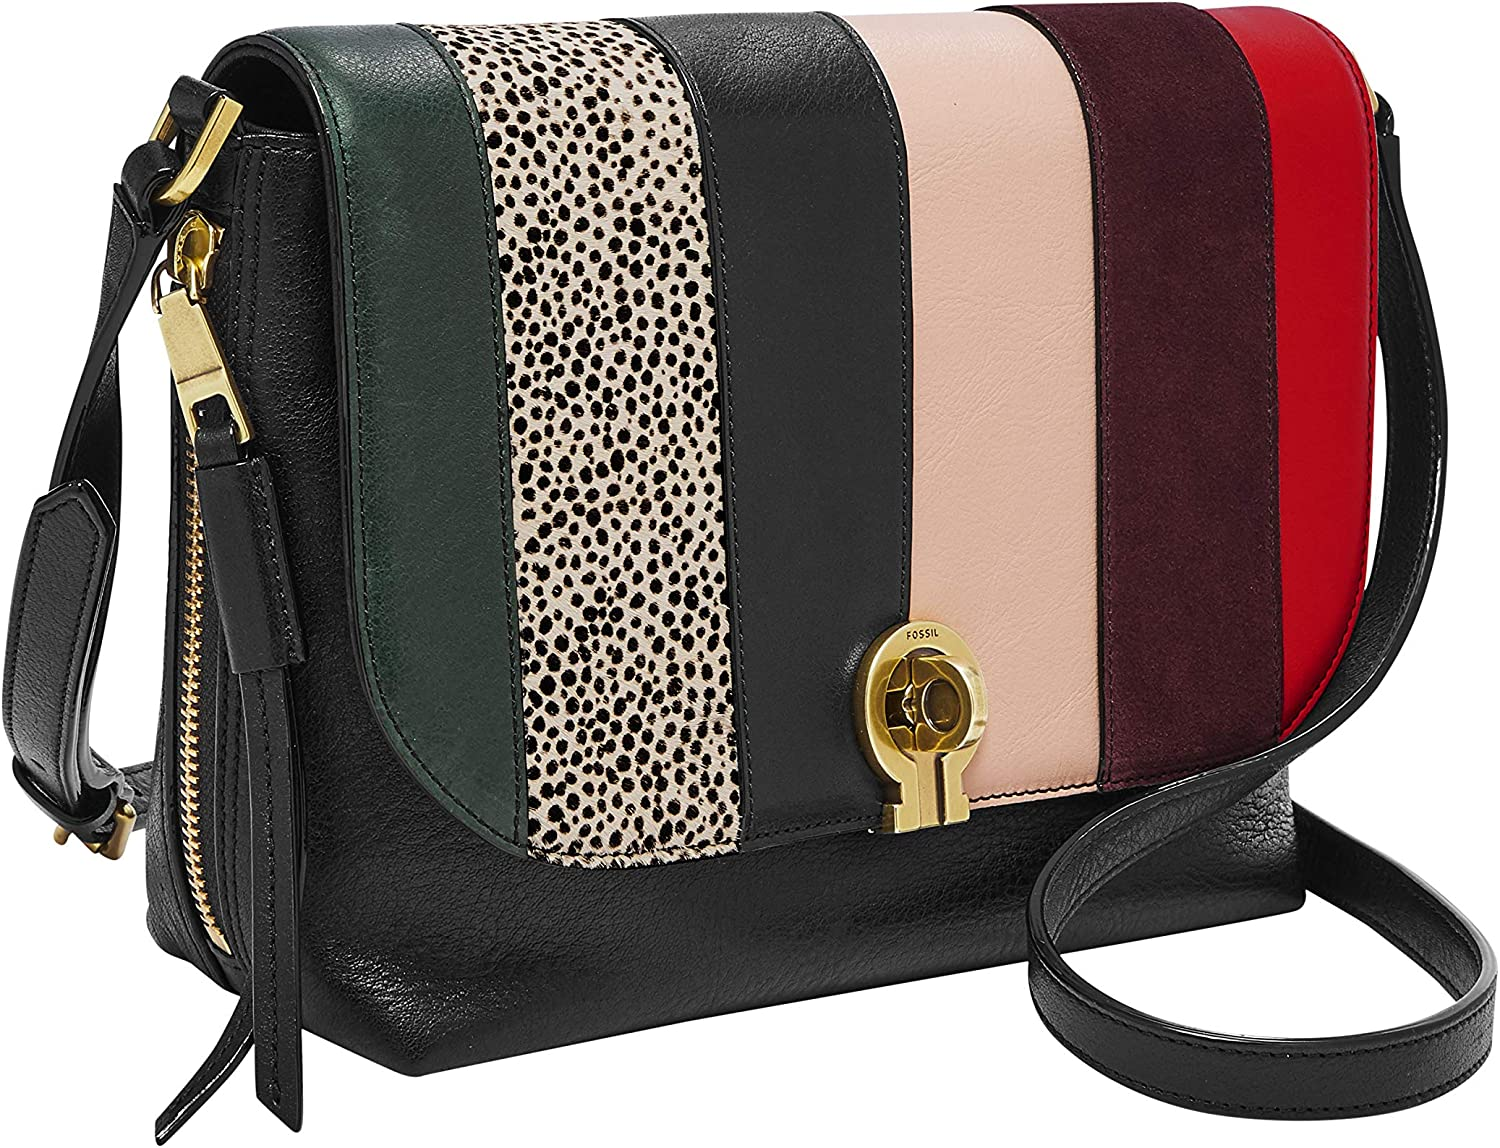 Fossil Women's Maya Small Flap Crossbody Bag